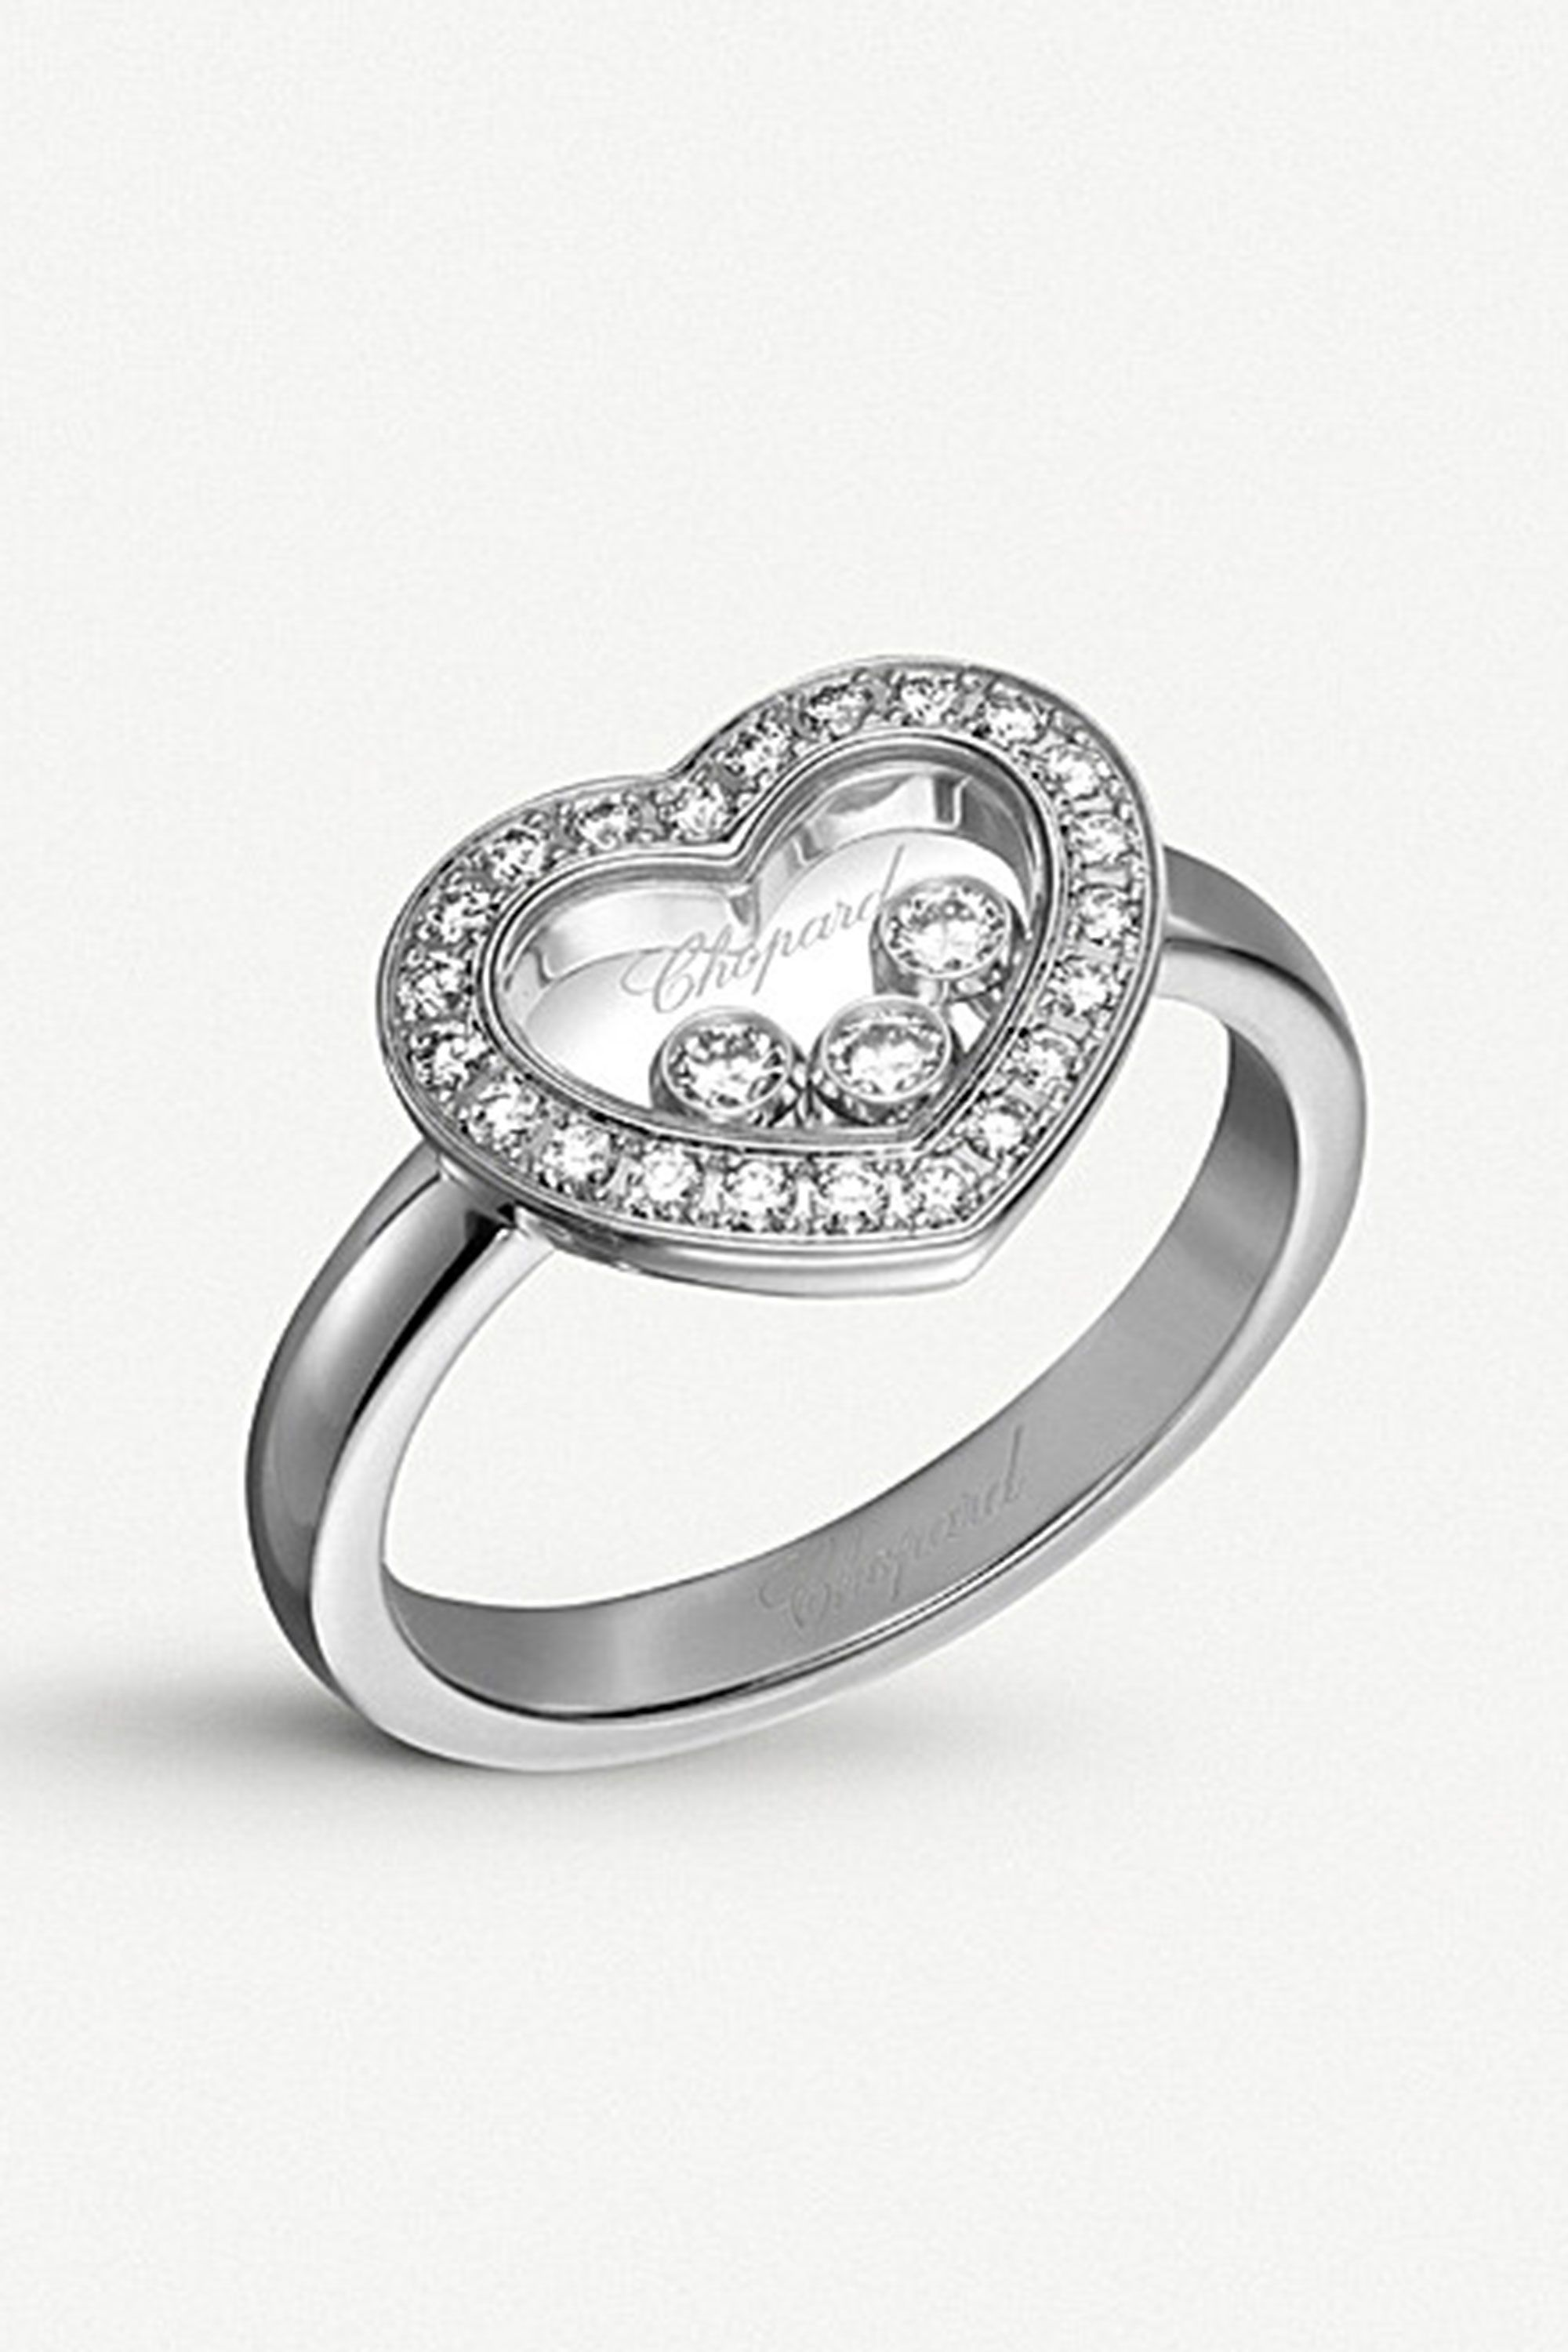 2b0db7d31 Our guide to the best engagement rings - designer and classic engagement  rings